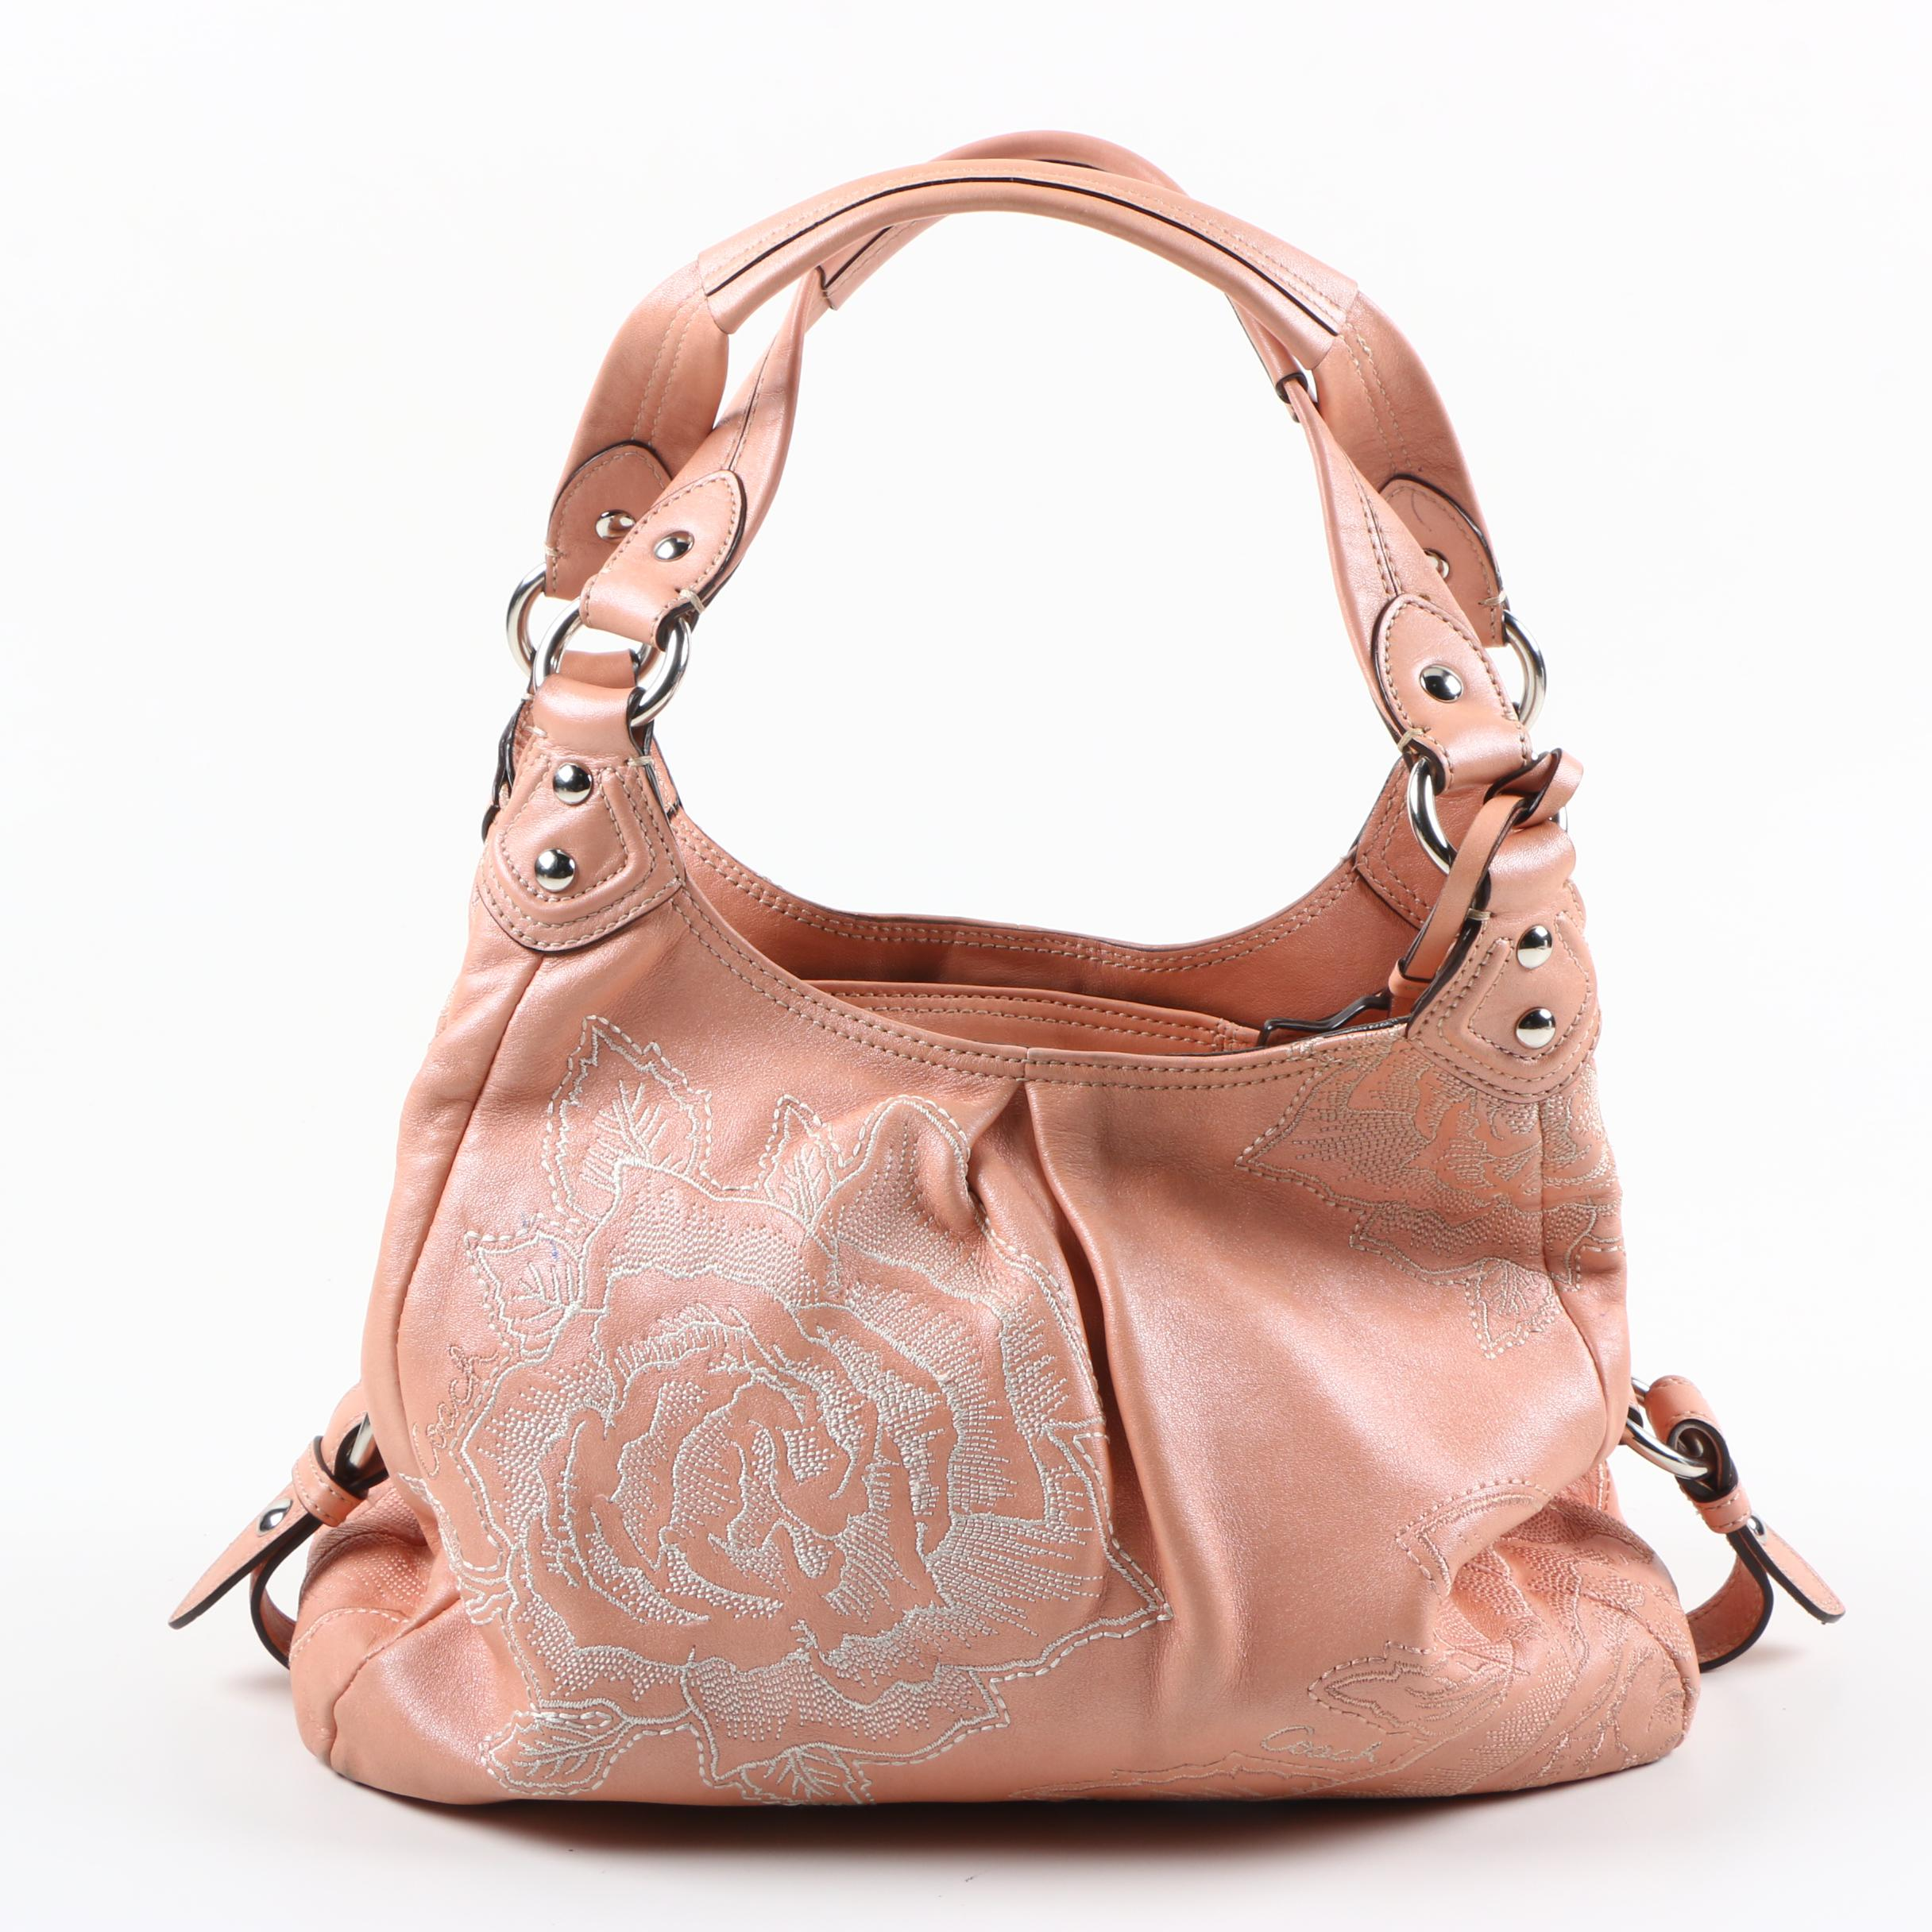 090dd9e93e ... coupon code for coach madison maggie blush pink rose leather handbag  2012d 26113